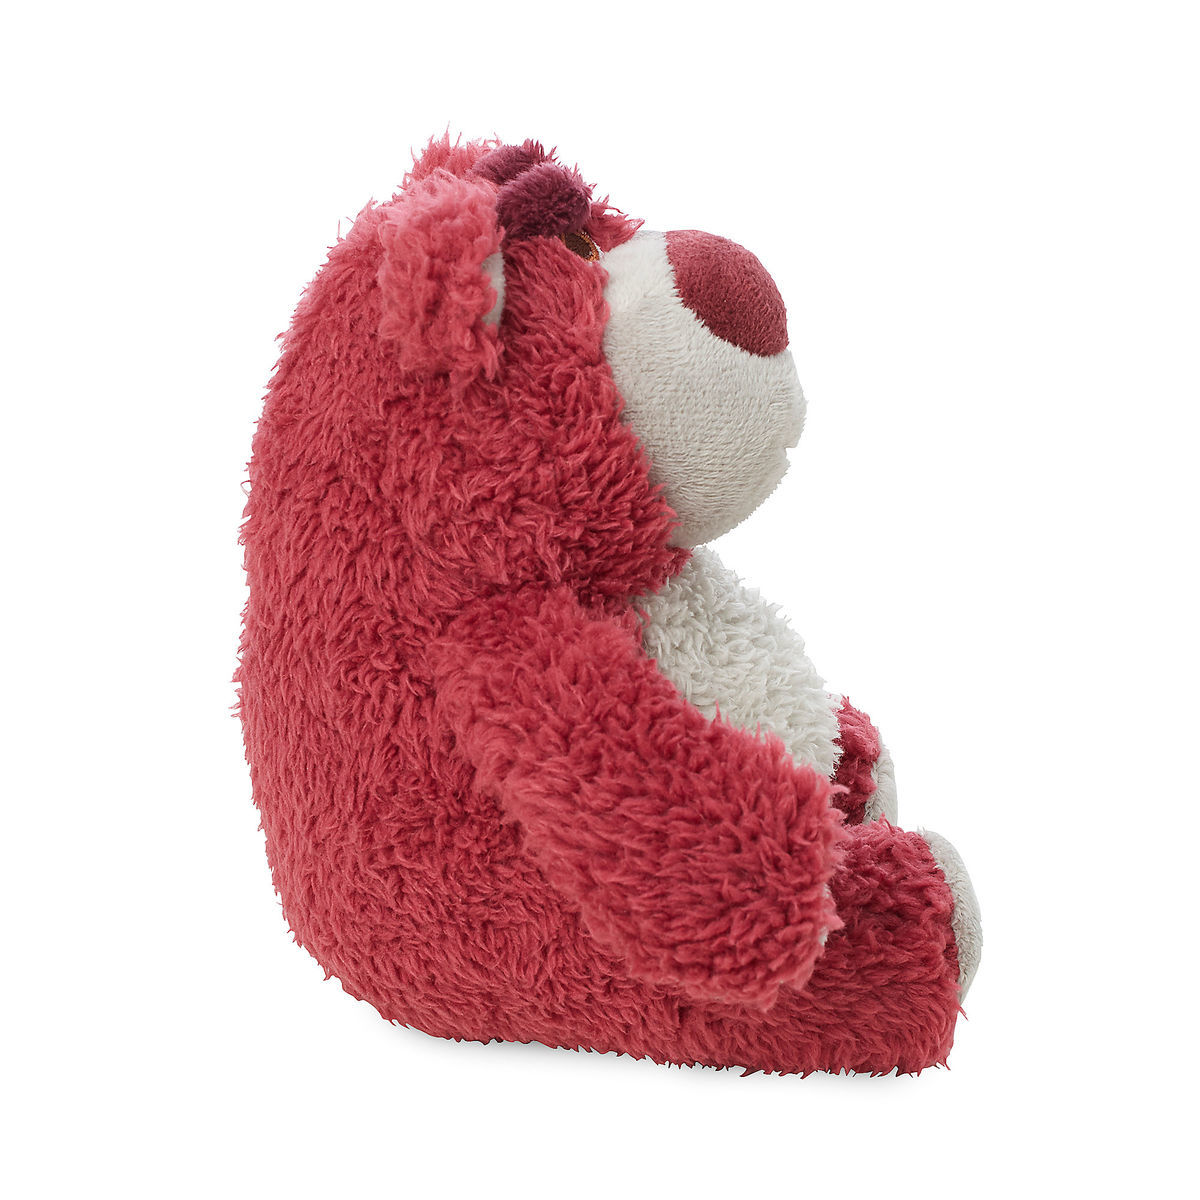 Pleasant Disney Store Lotso Scented Plush Toy Story 3 Mini Bean Bag 7 New With Tag Alphanode Cool Chair Designs And Ideas Alphanodeonline